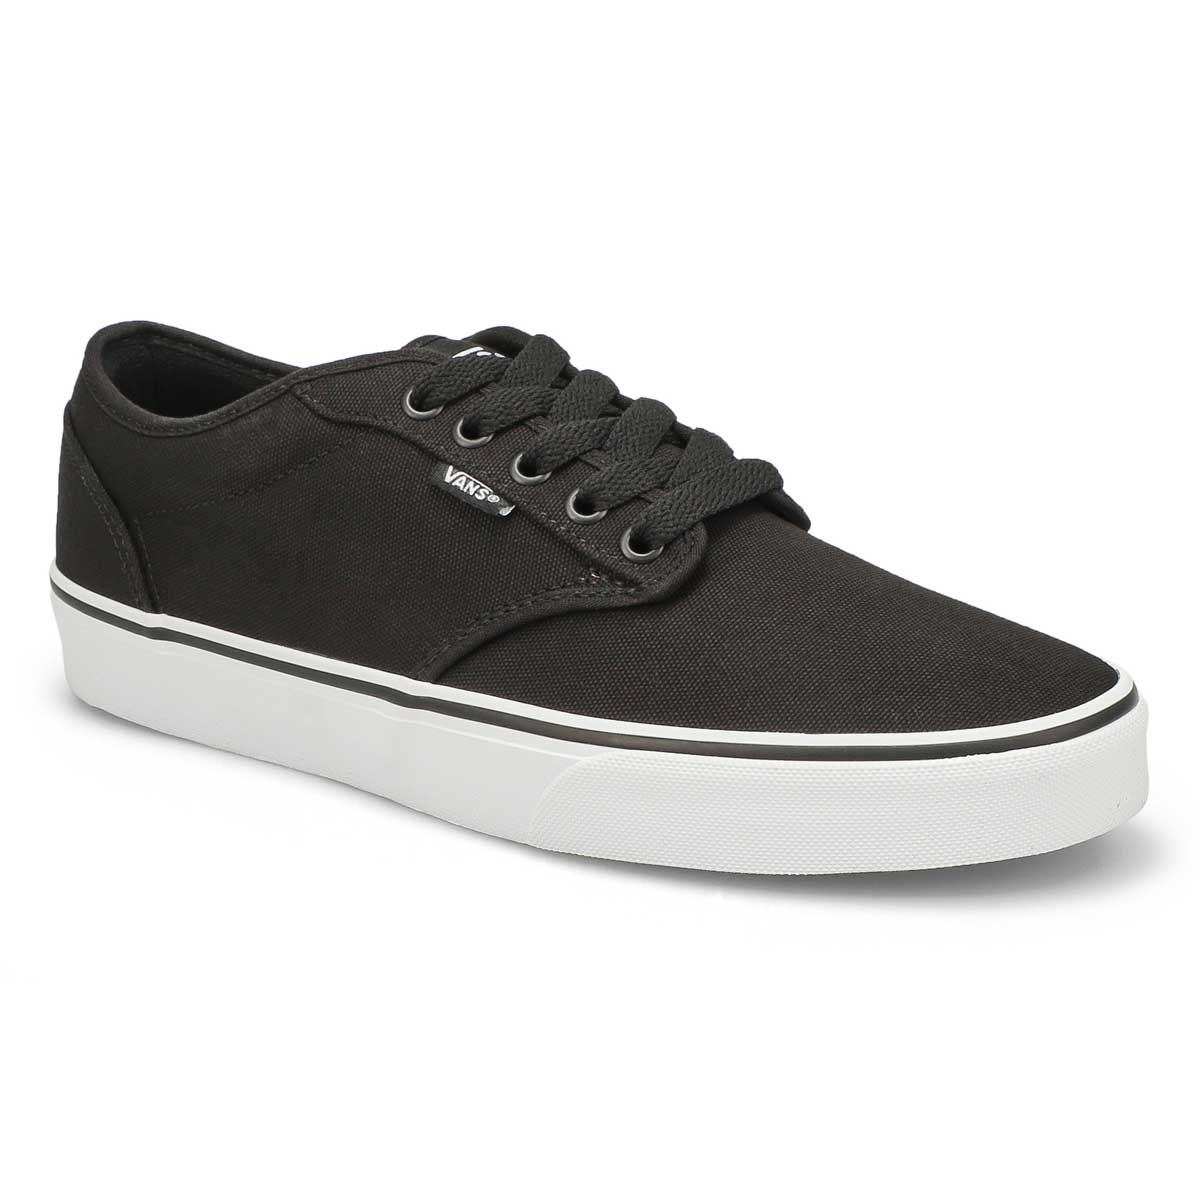 Men's ATWOOD black canvas lace up sneakers